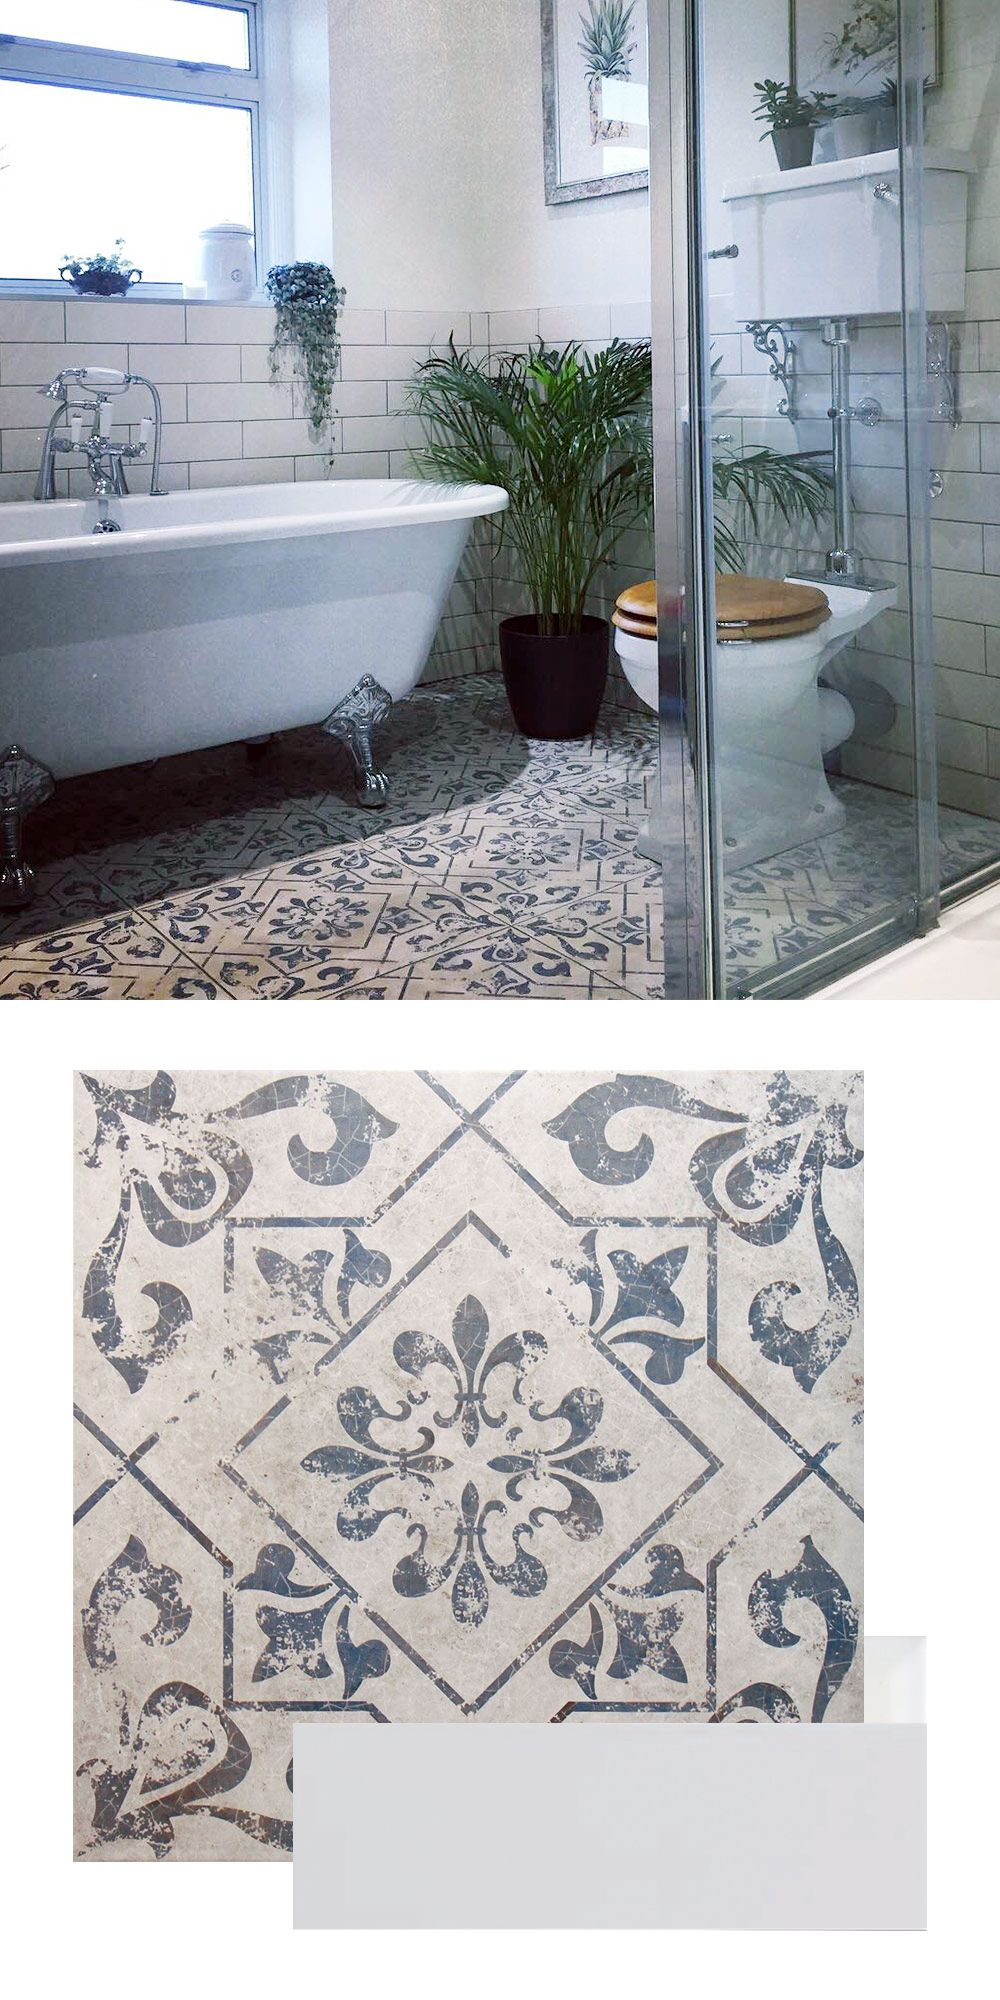 Photo of Ceri Created A Characterful Bathroom With Brick and Pattern Tiles